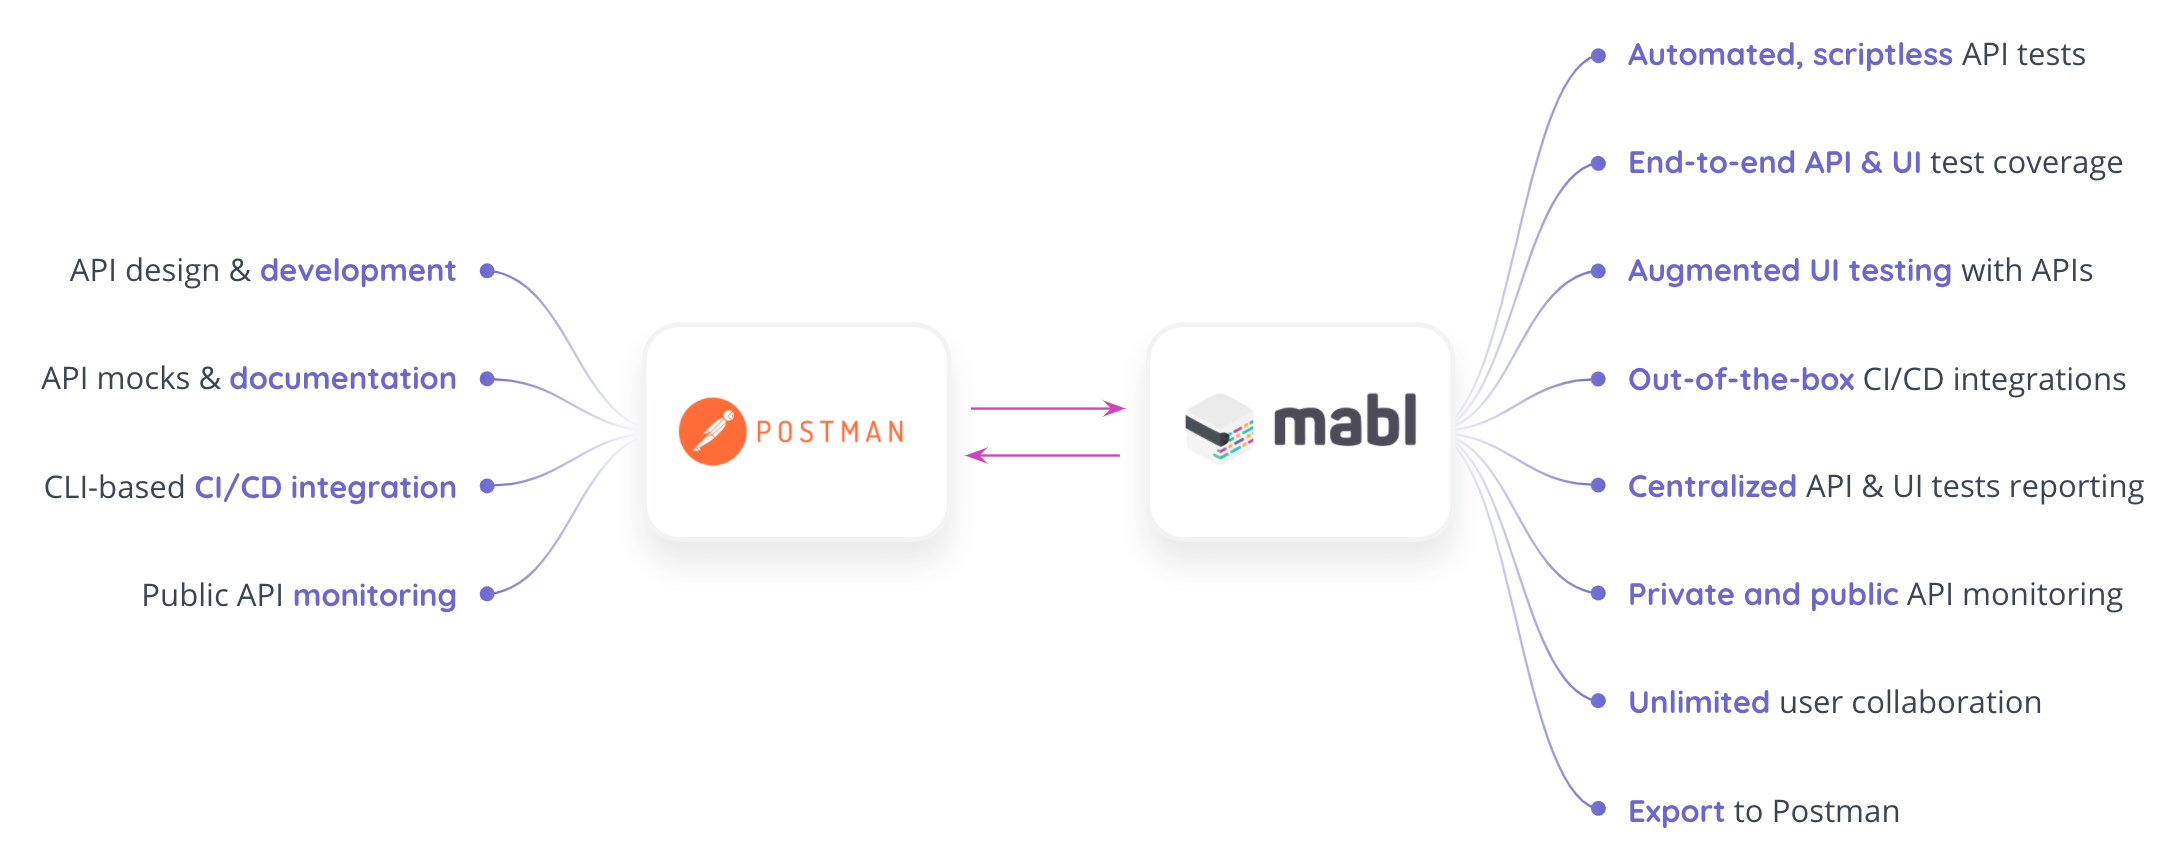 mabl integration with Postman overview